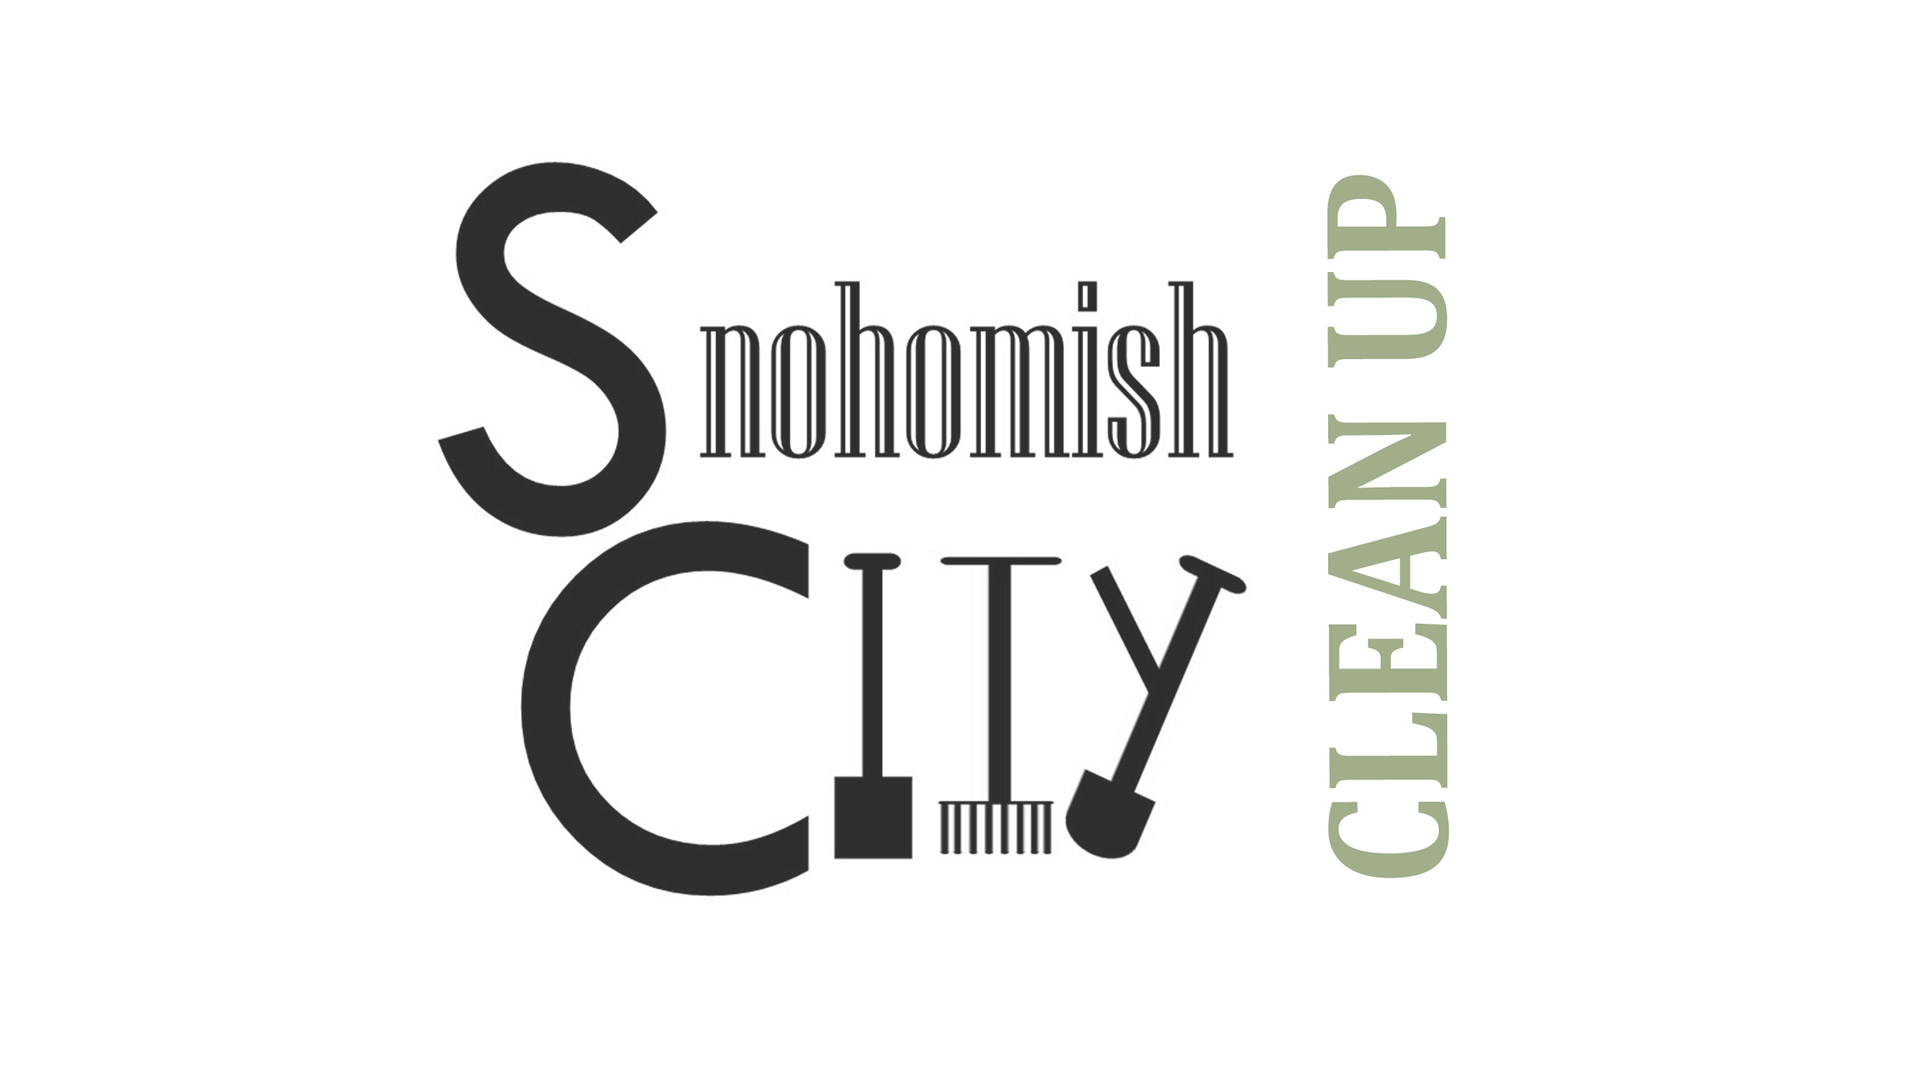 170222 snohomish city cleanup no date